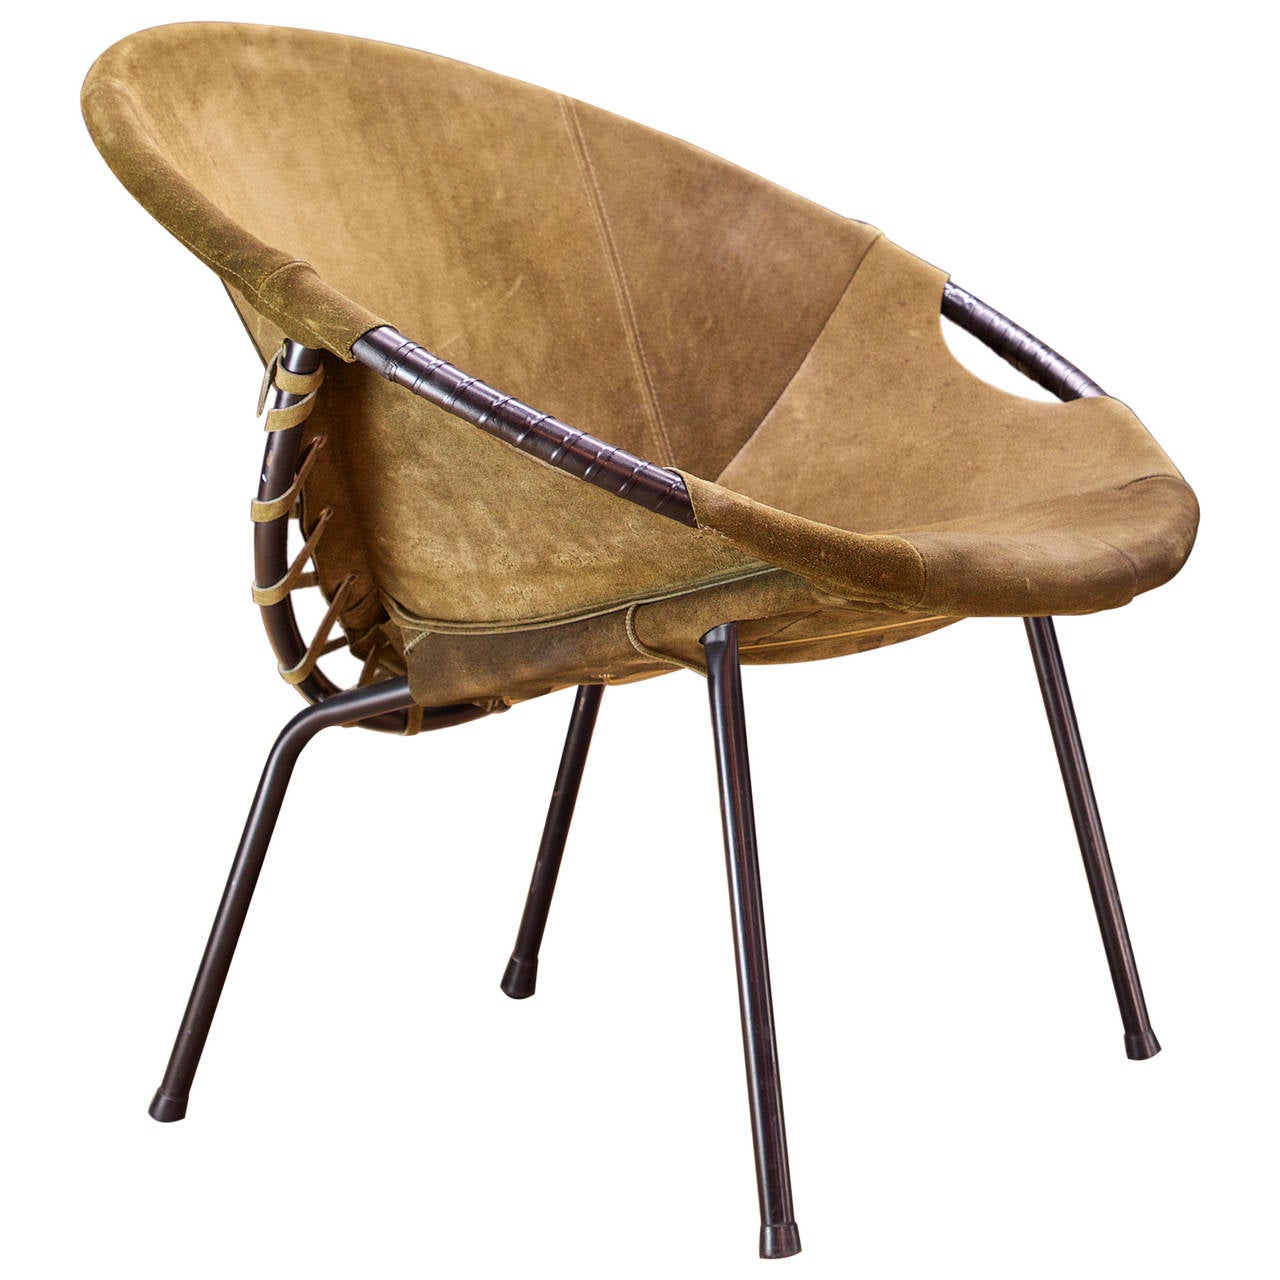 1960s Lusch Circle Chair in Greenish Brown Suede Leather at 1stdibs